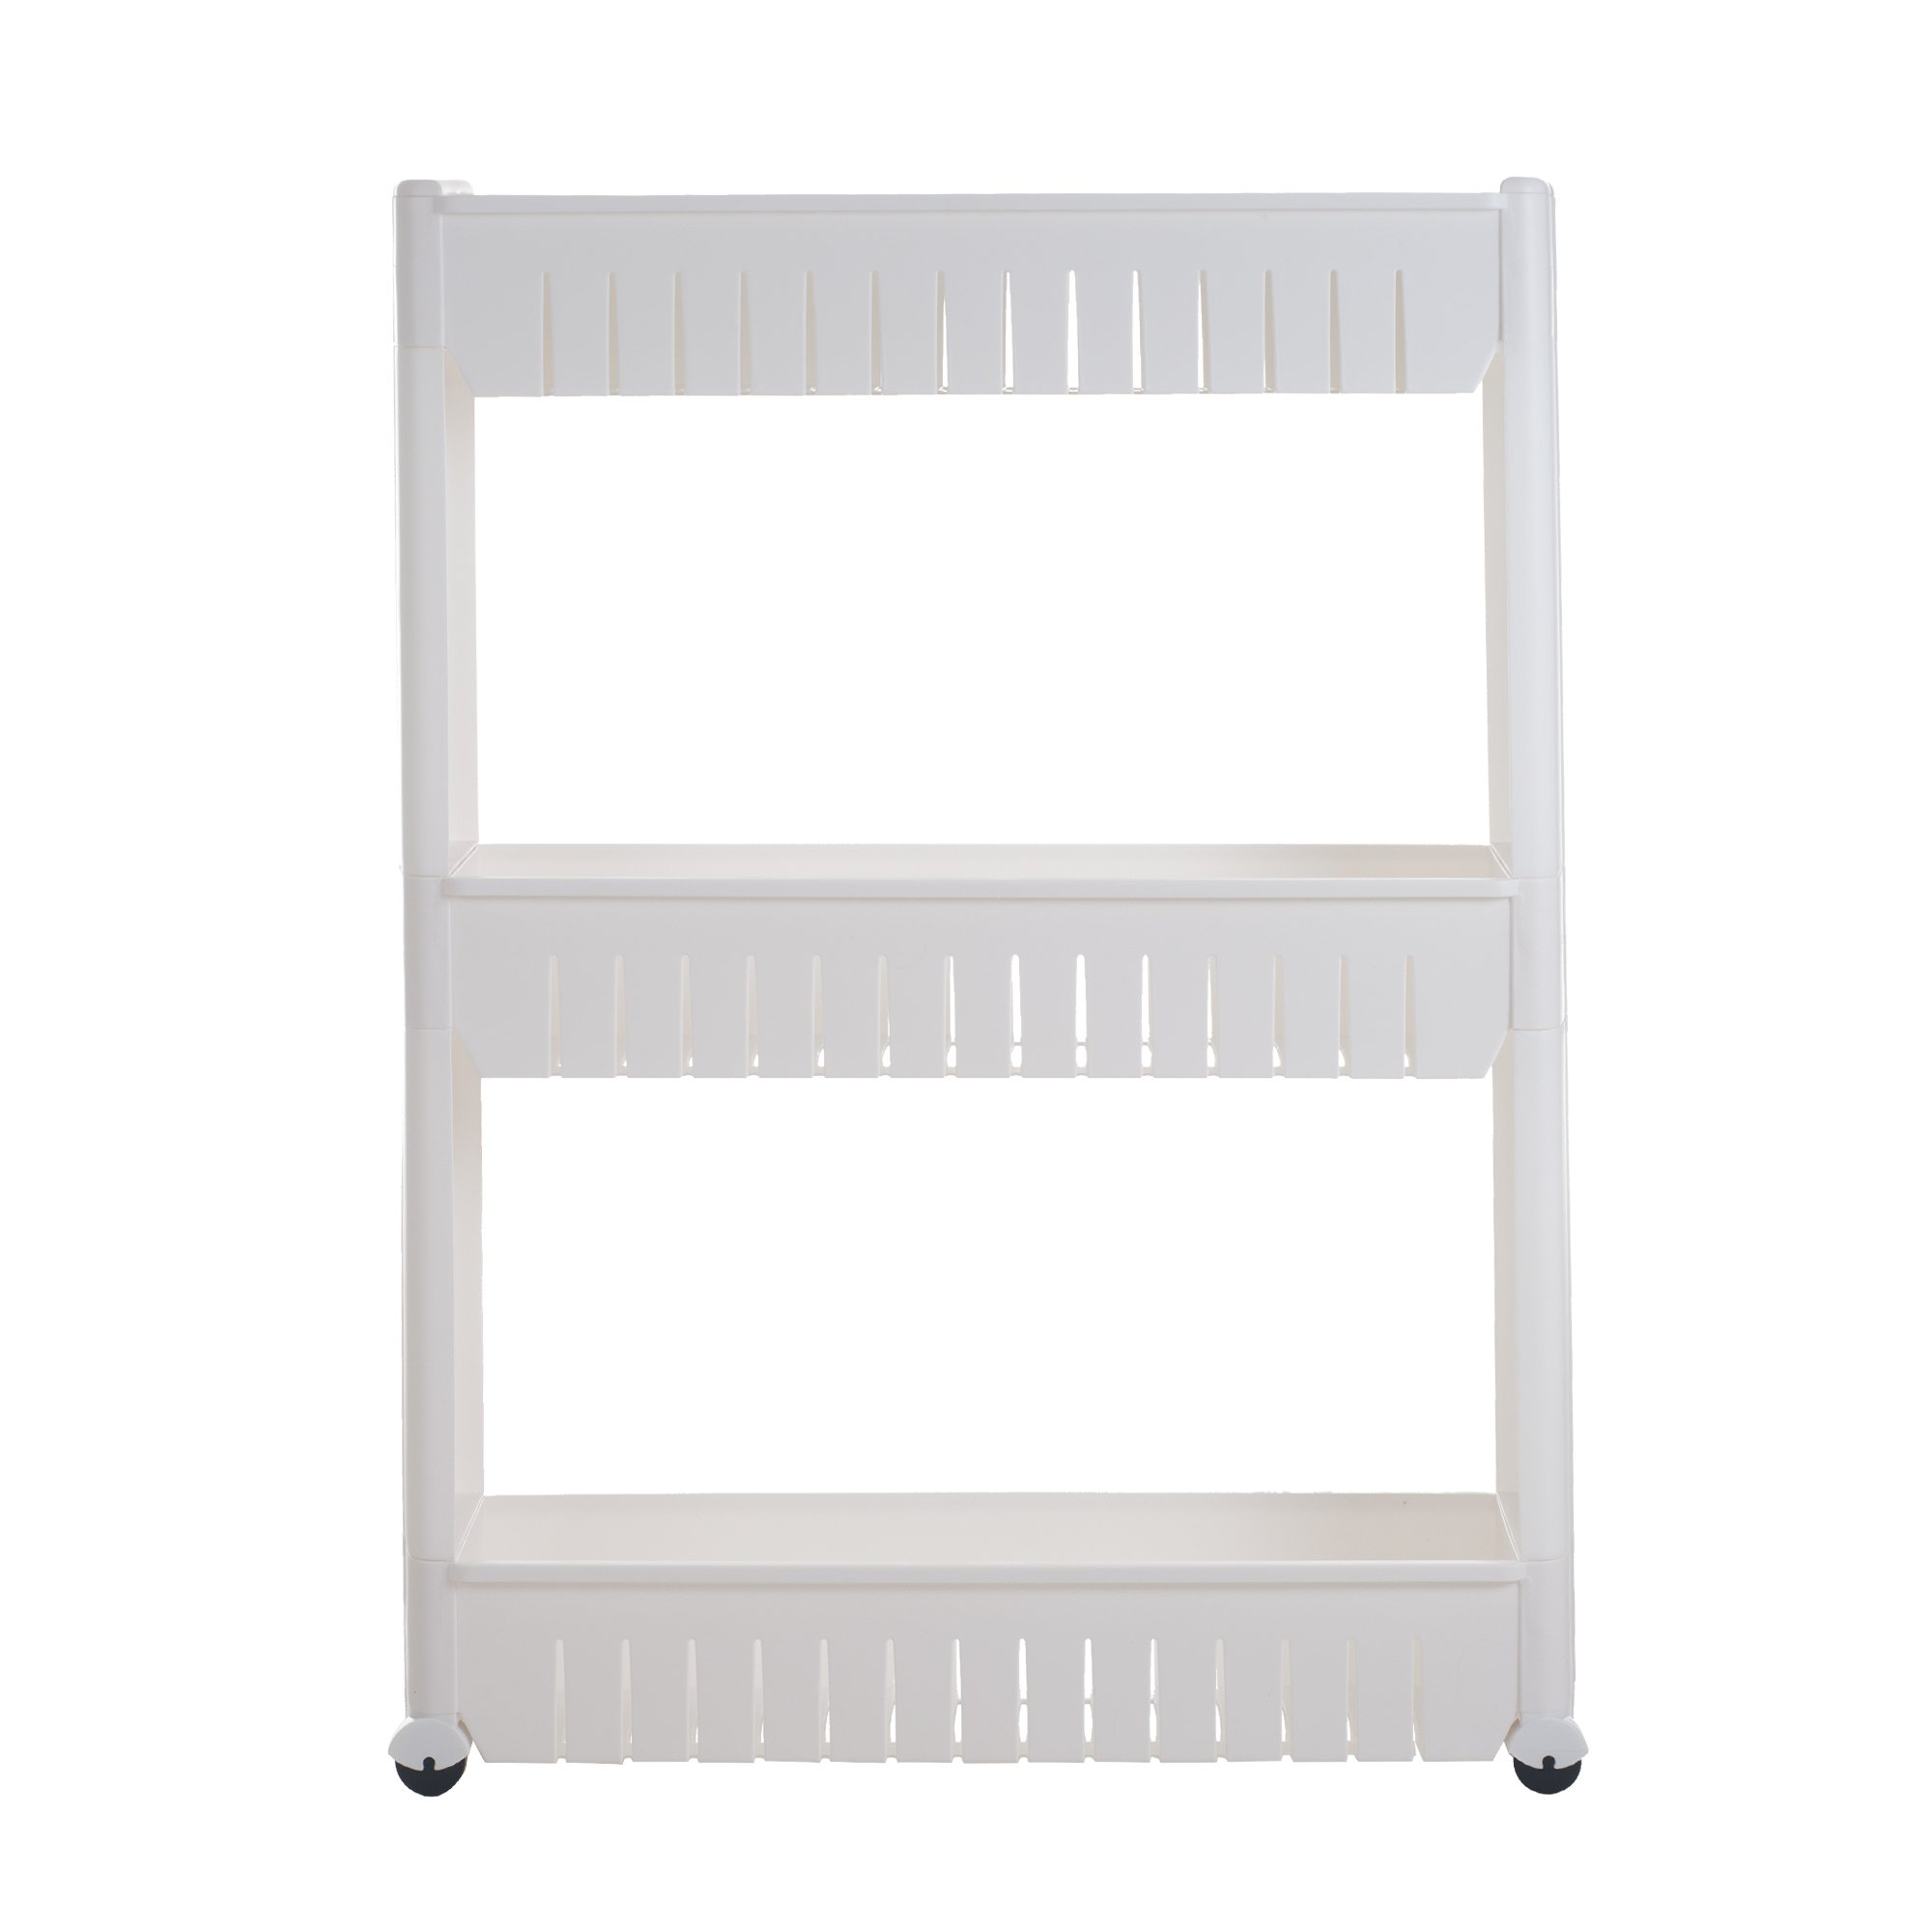 Mobile Shelving Unit Organizer with 3 Large Storage Baskets, Slim Slide Out Pantry Storage Rack for Narrow Spaces by Everyday Home by Trademark